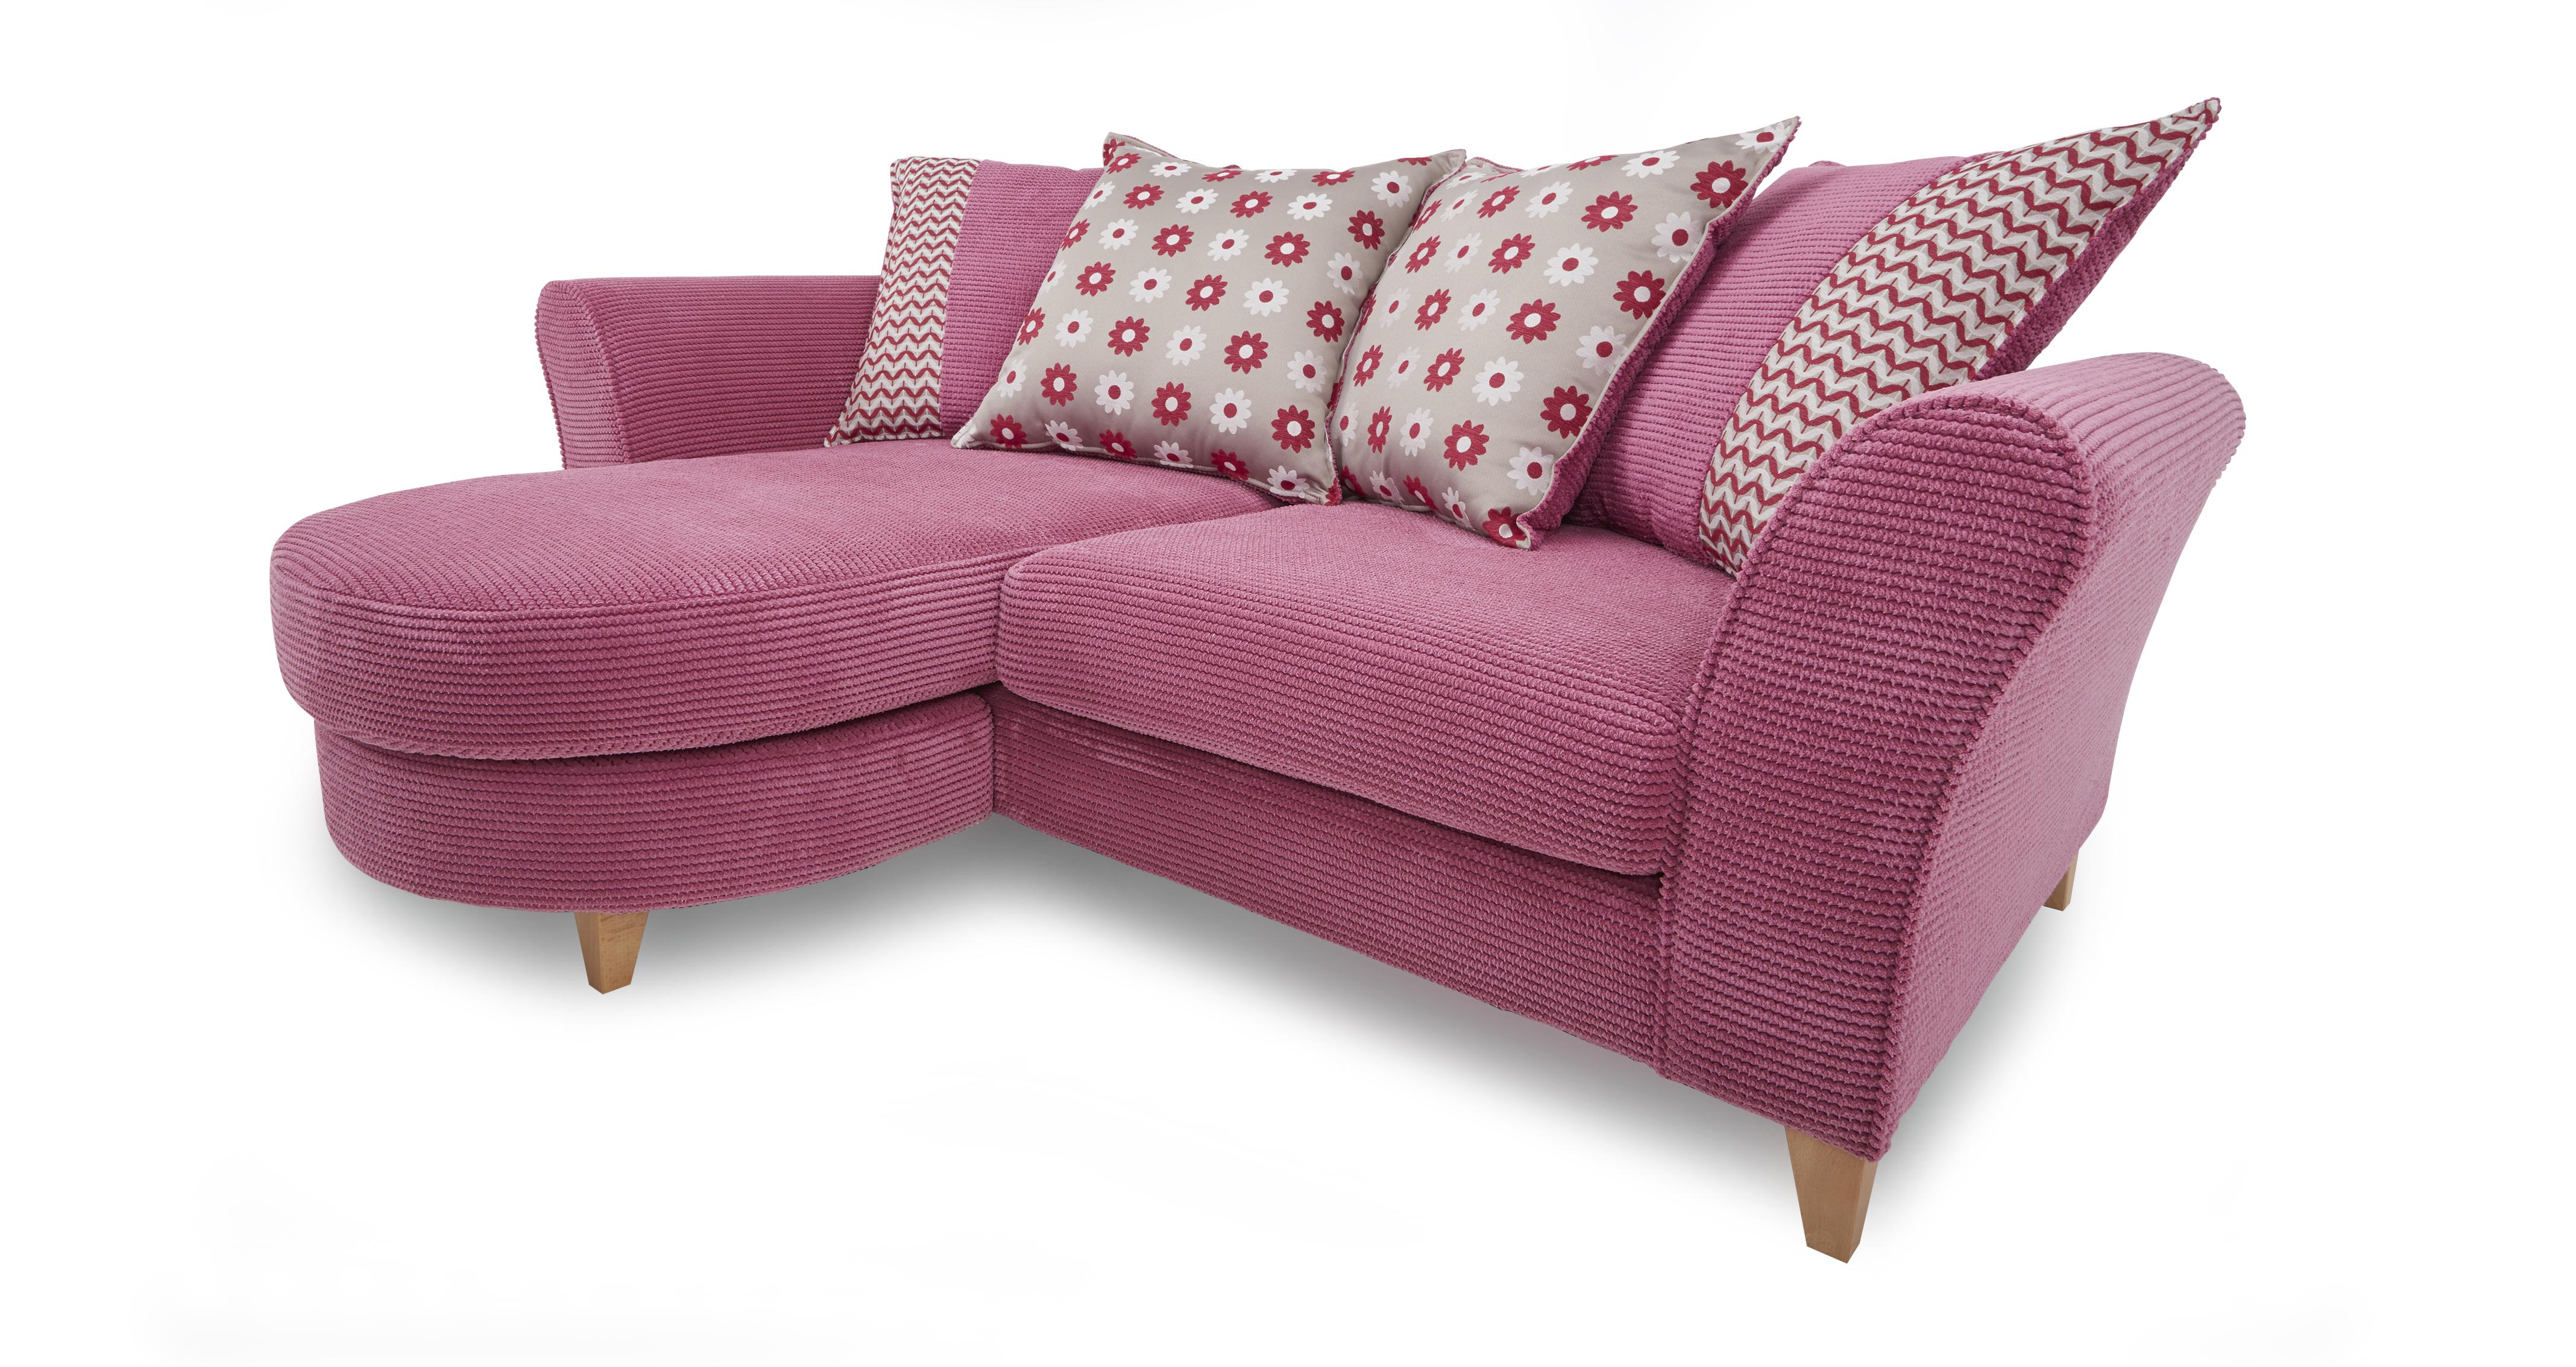 Dfs Bonbon Pink Fabric Sofa Set Inc 3 Seater Accent Chair